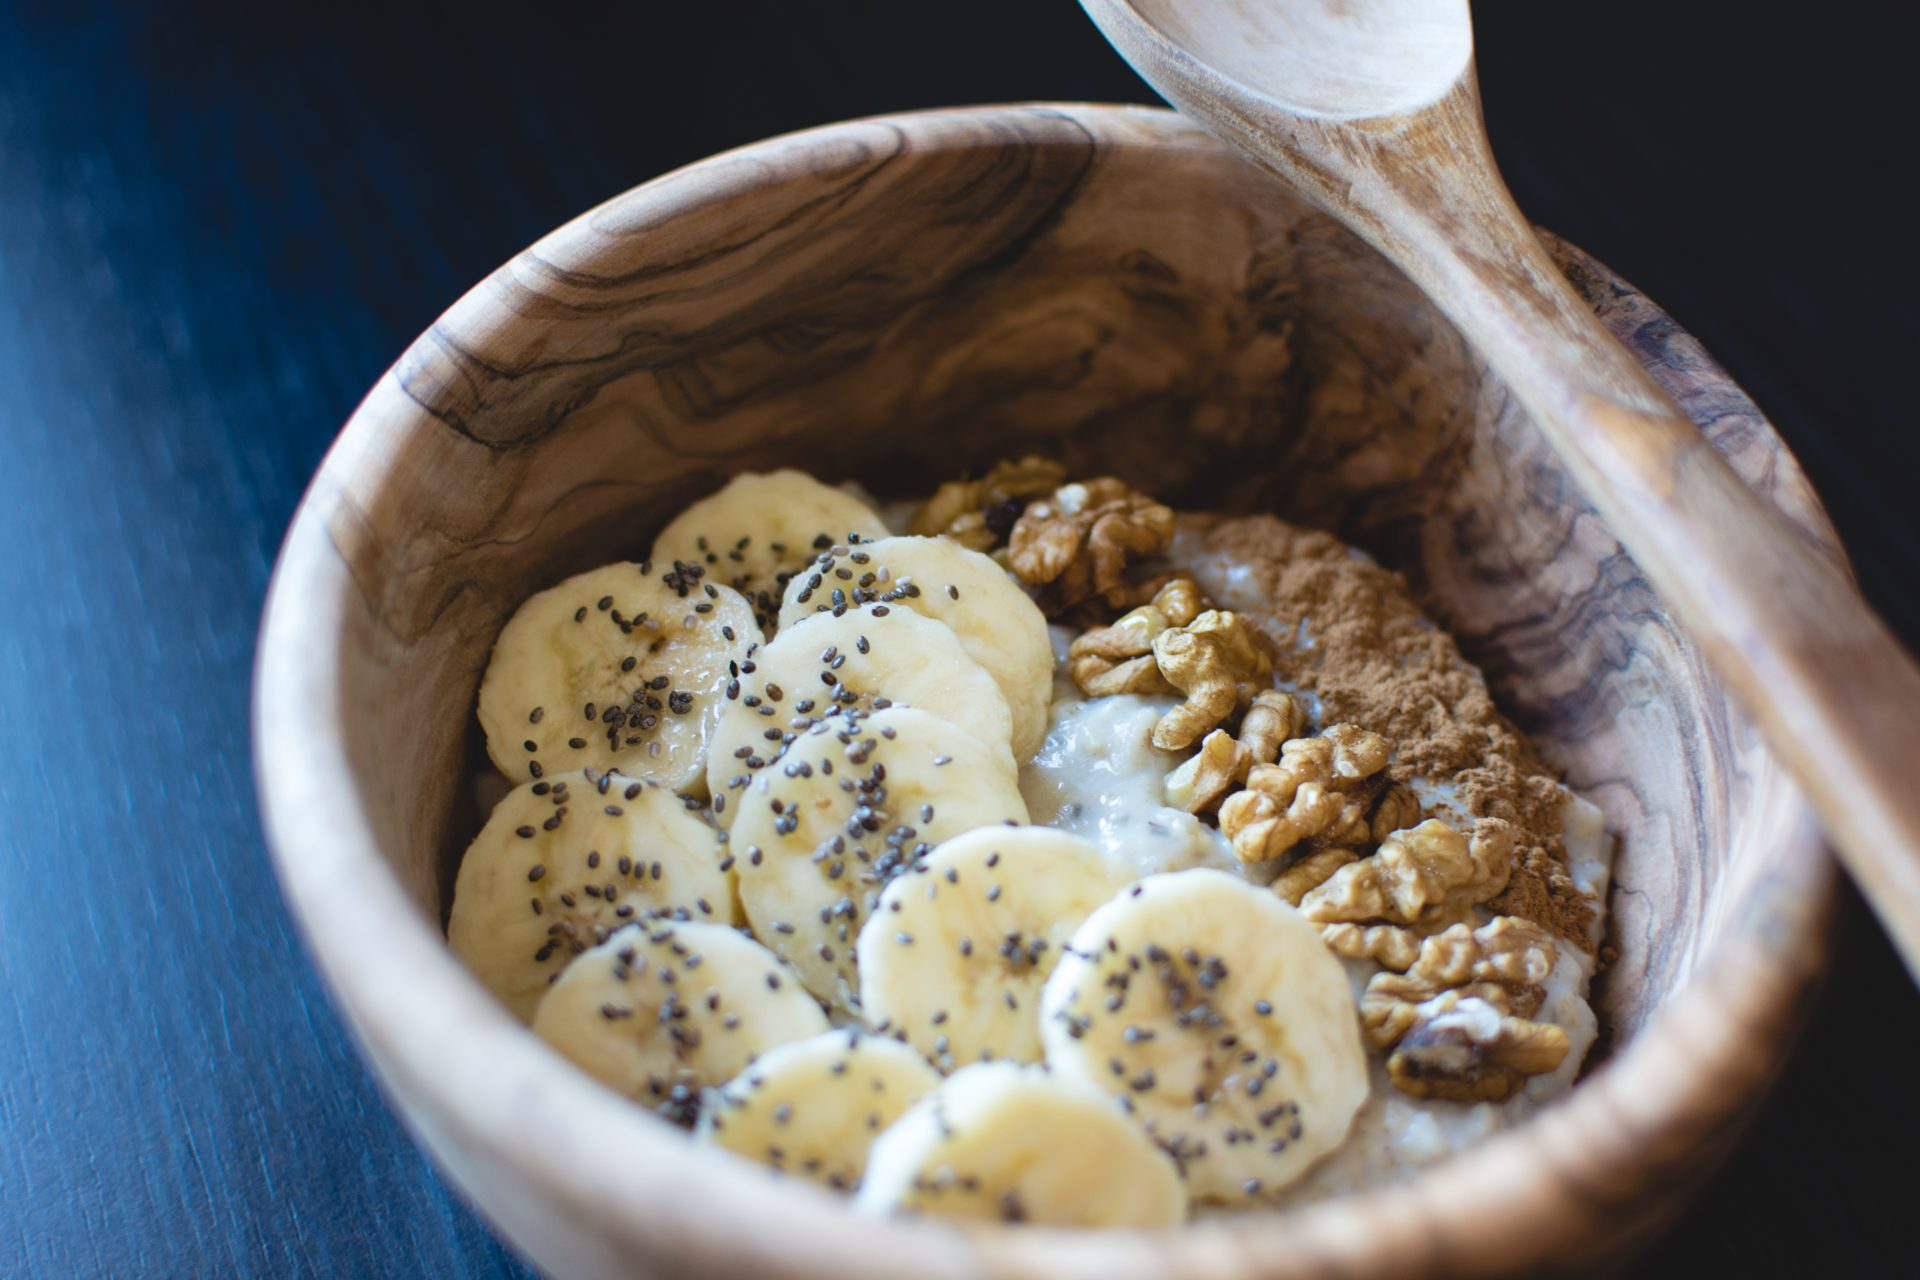 Oatmeal with Chia Seeds, Banana and Walnuts